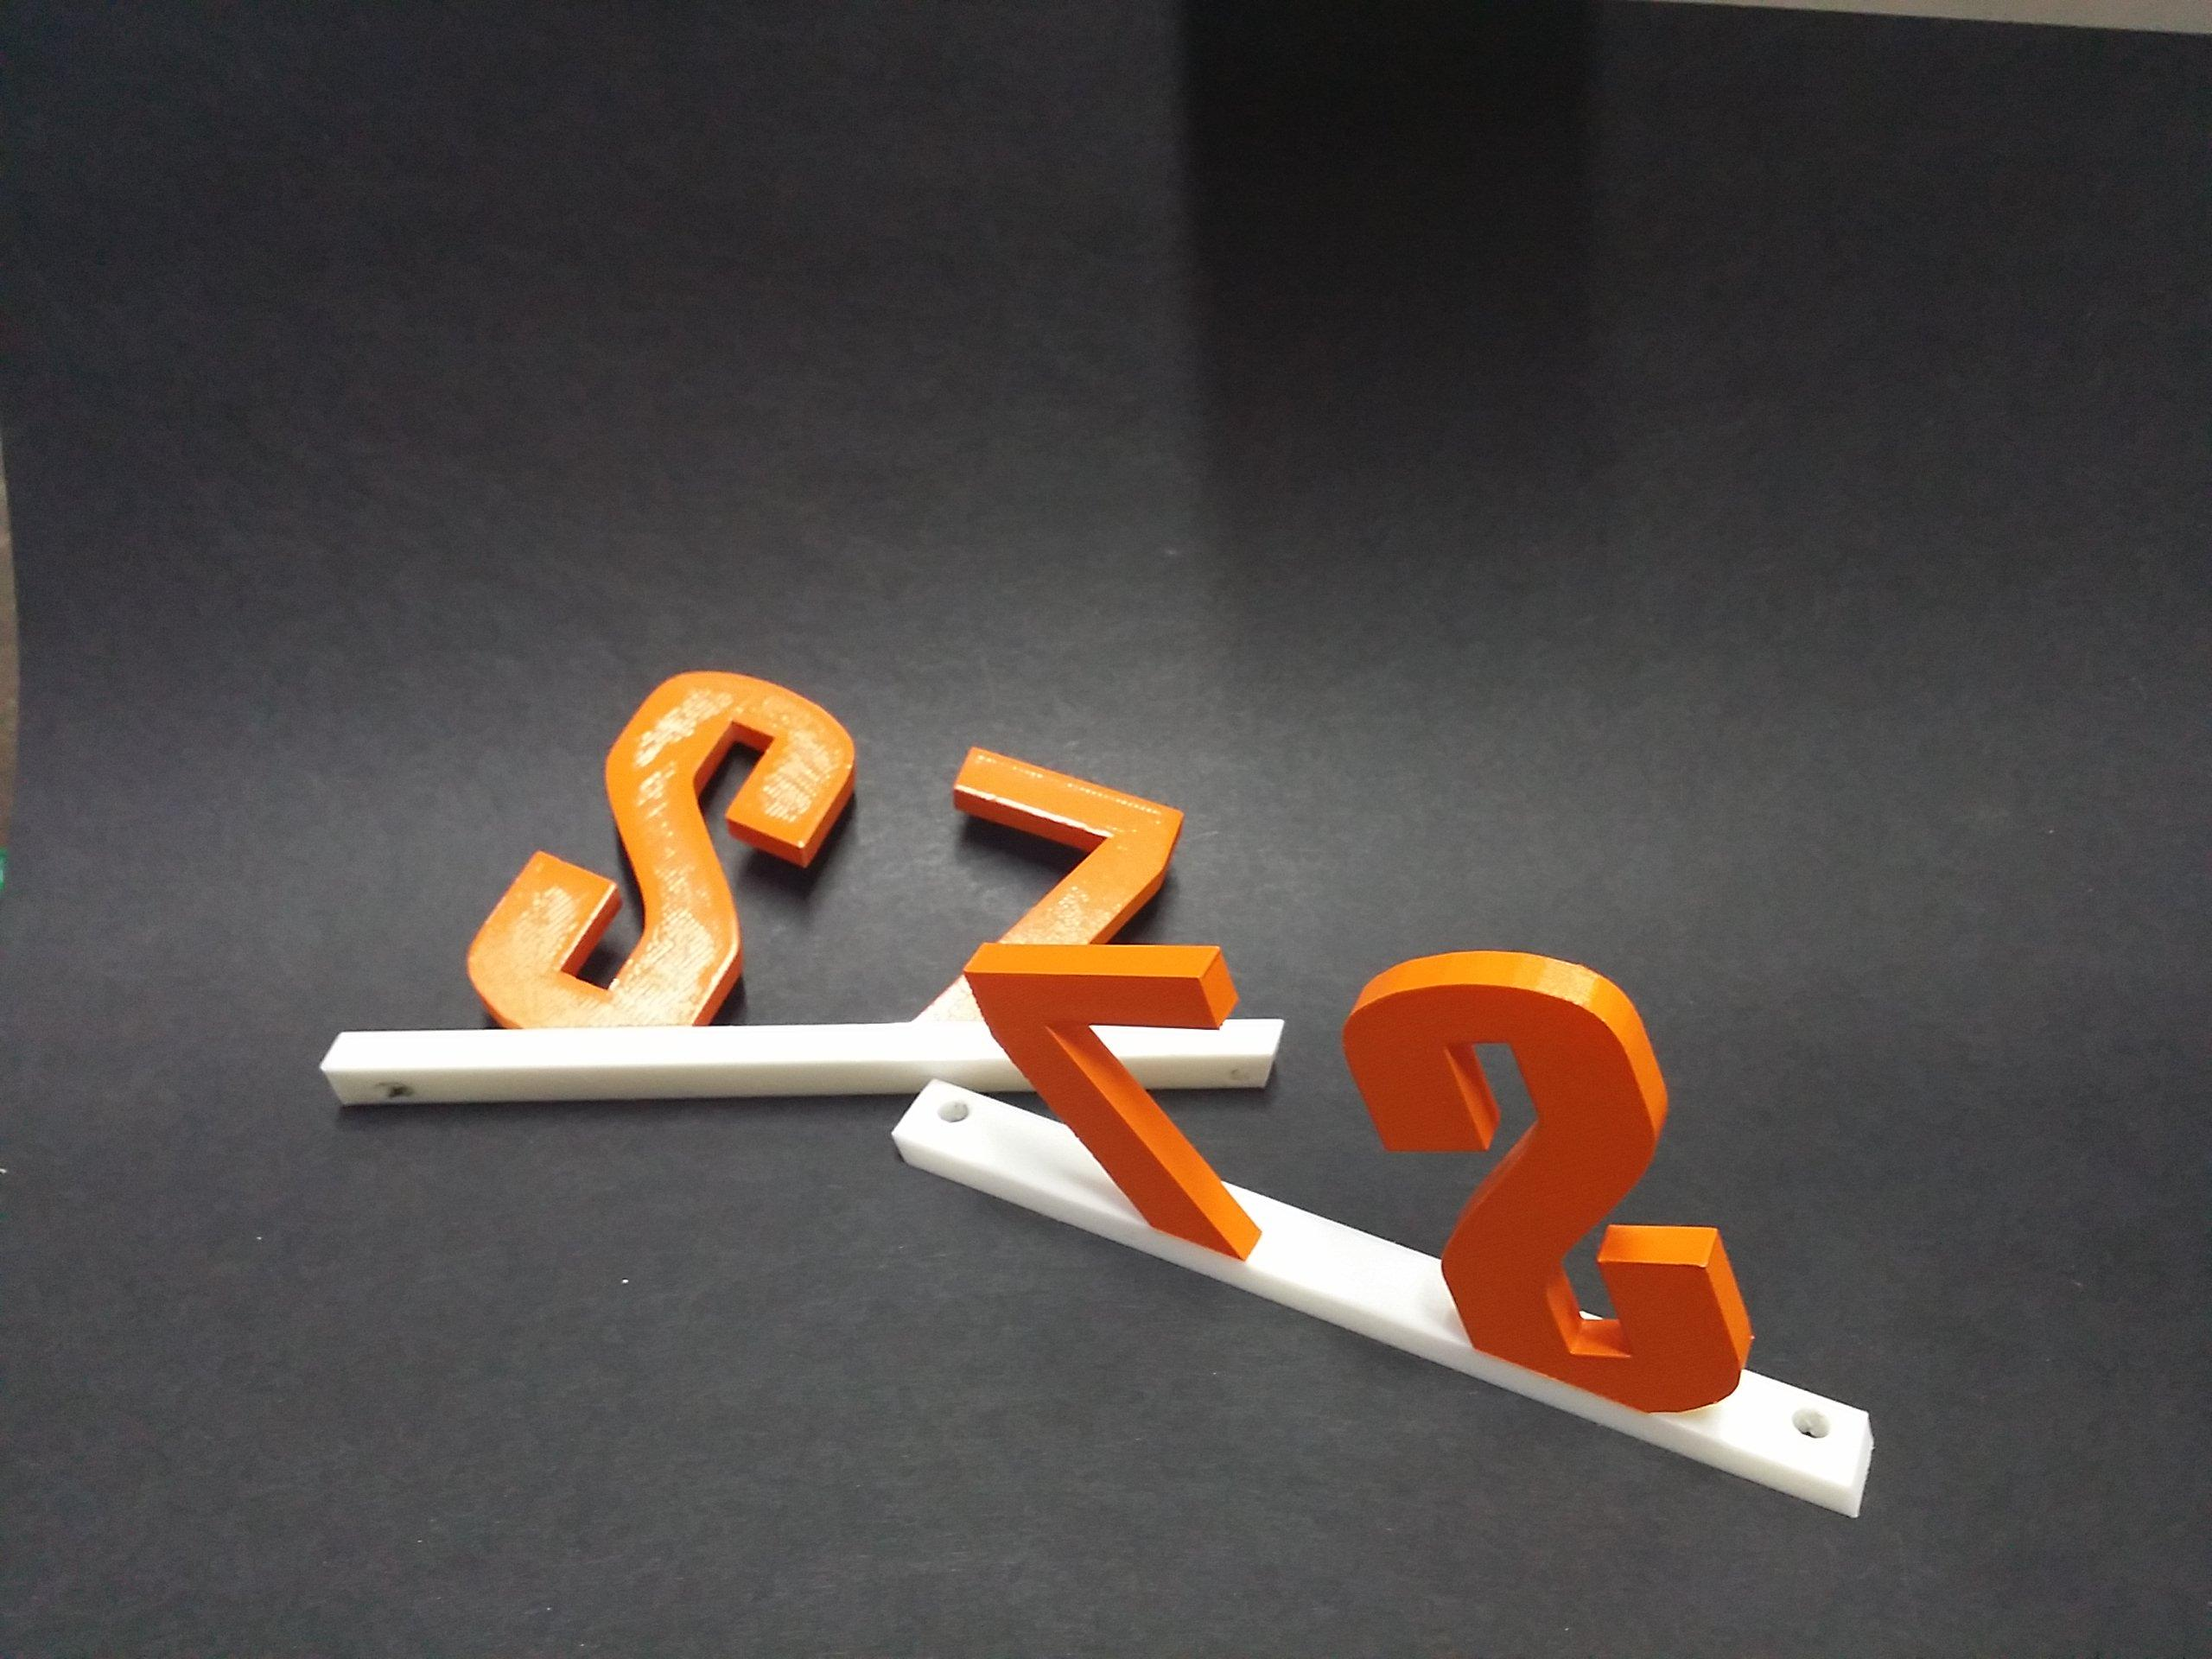 3D printing - by S7design